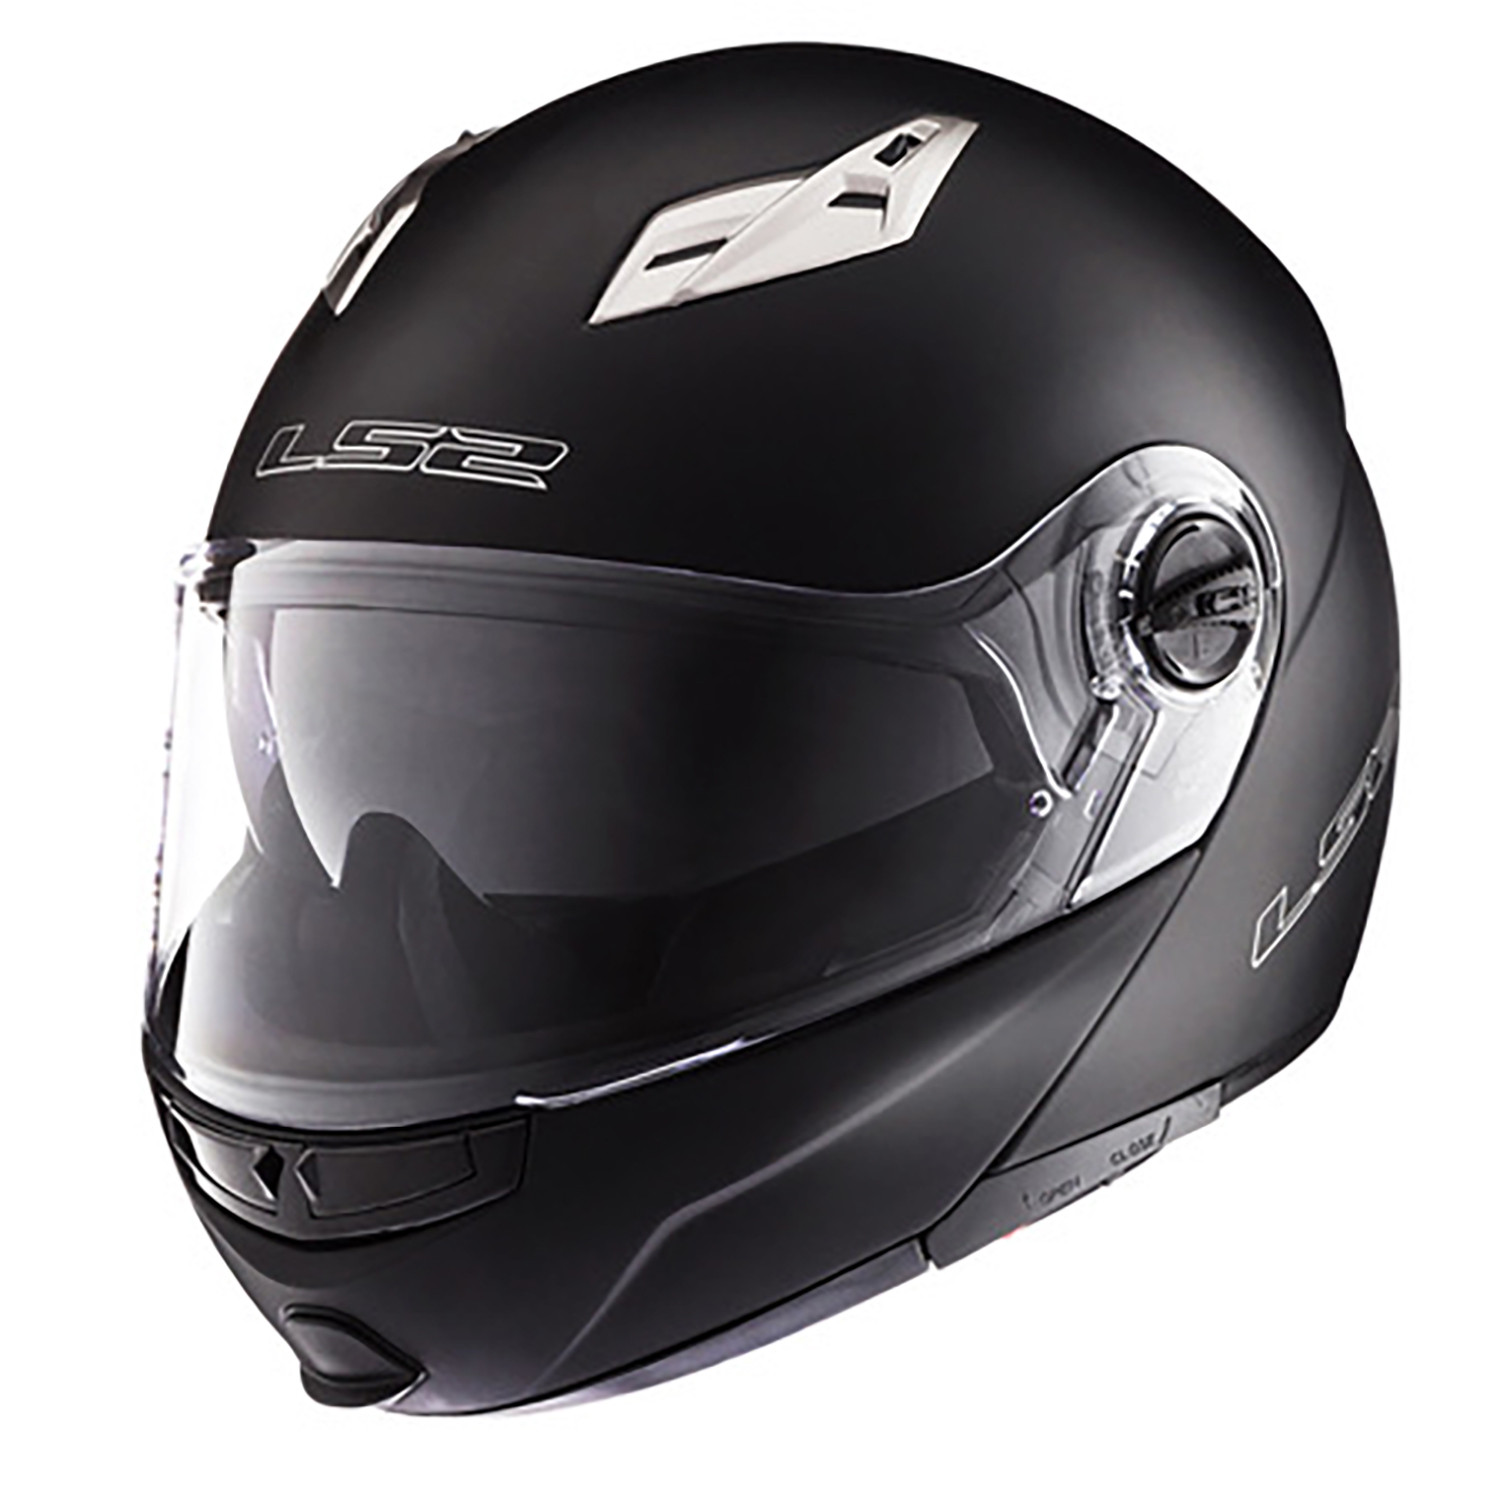 Casco Rebatible LS2 FF 370 Easy Negro Brillo